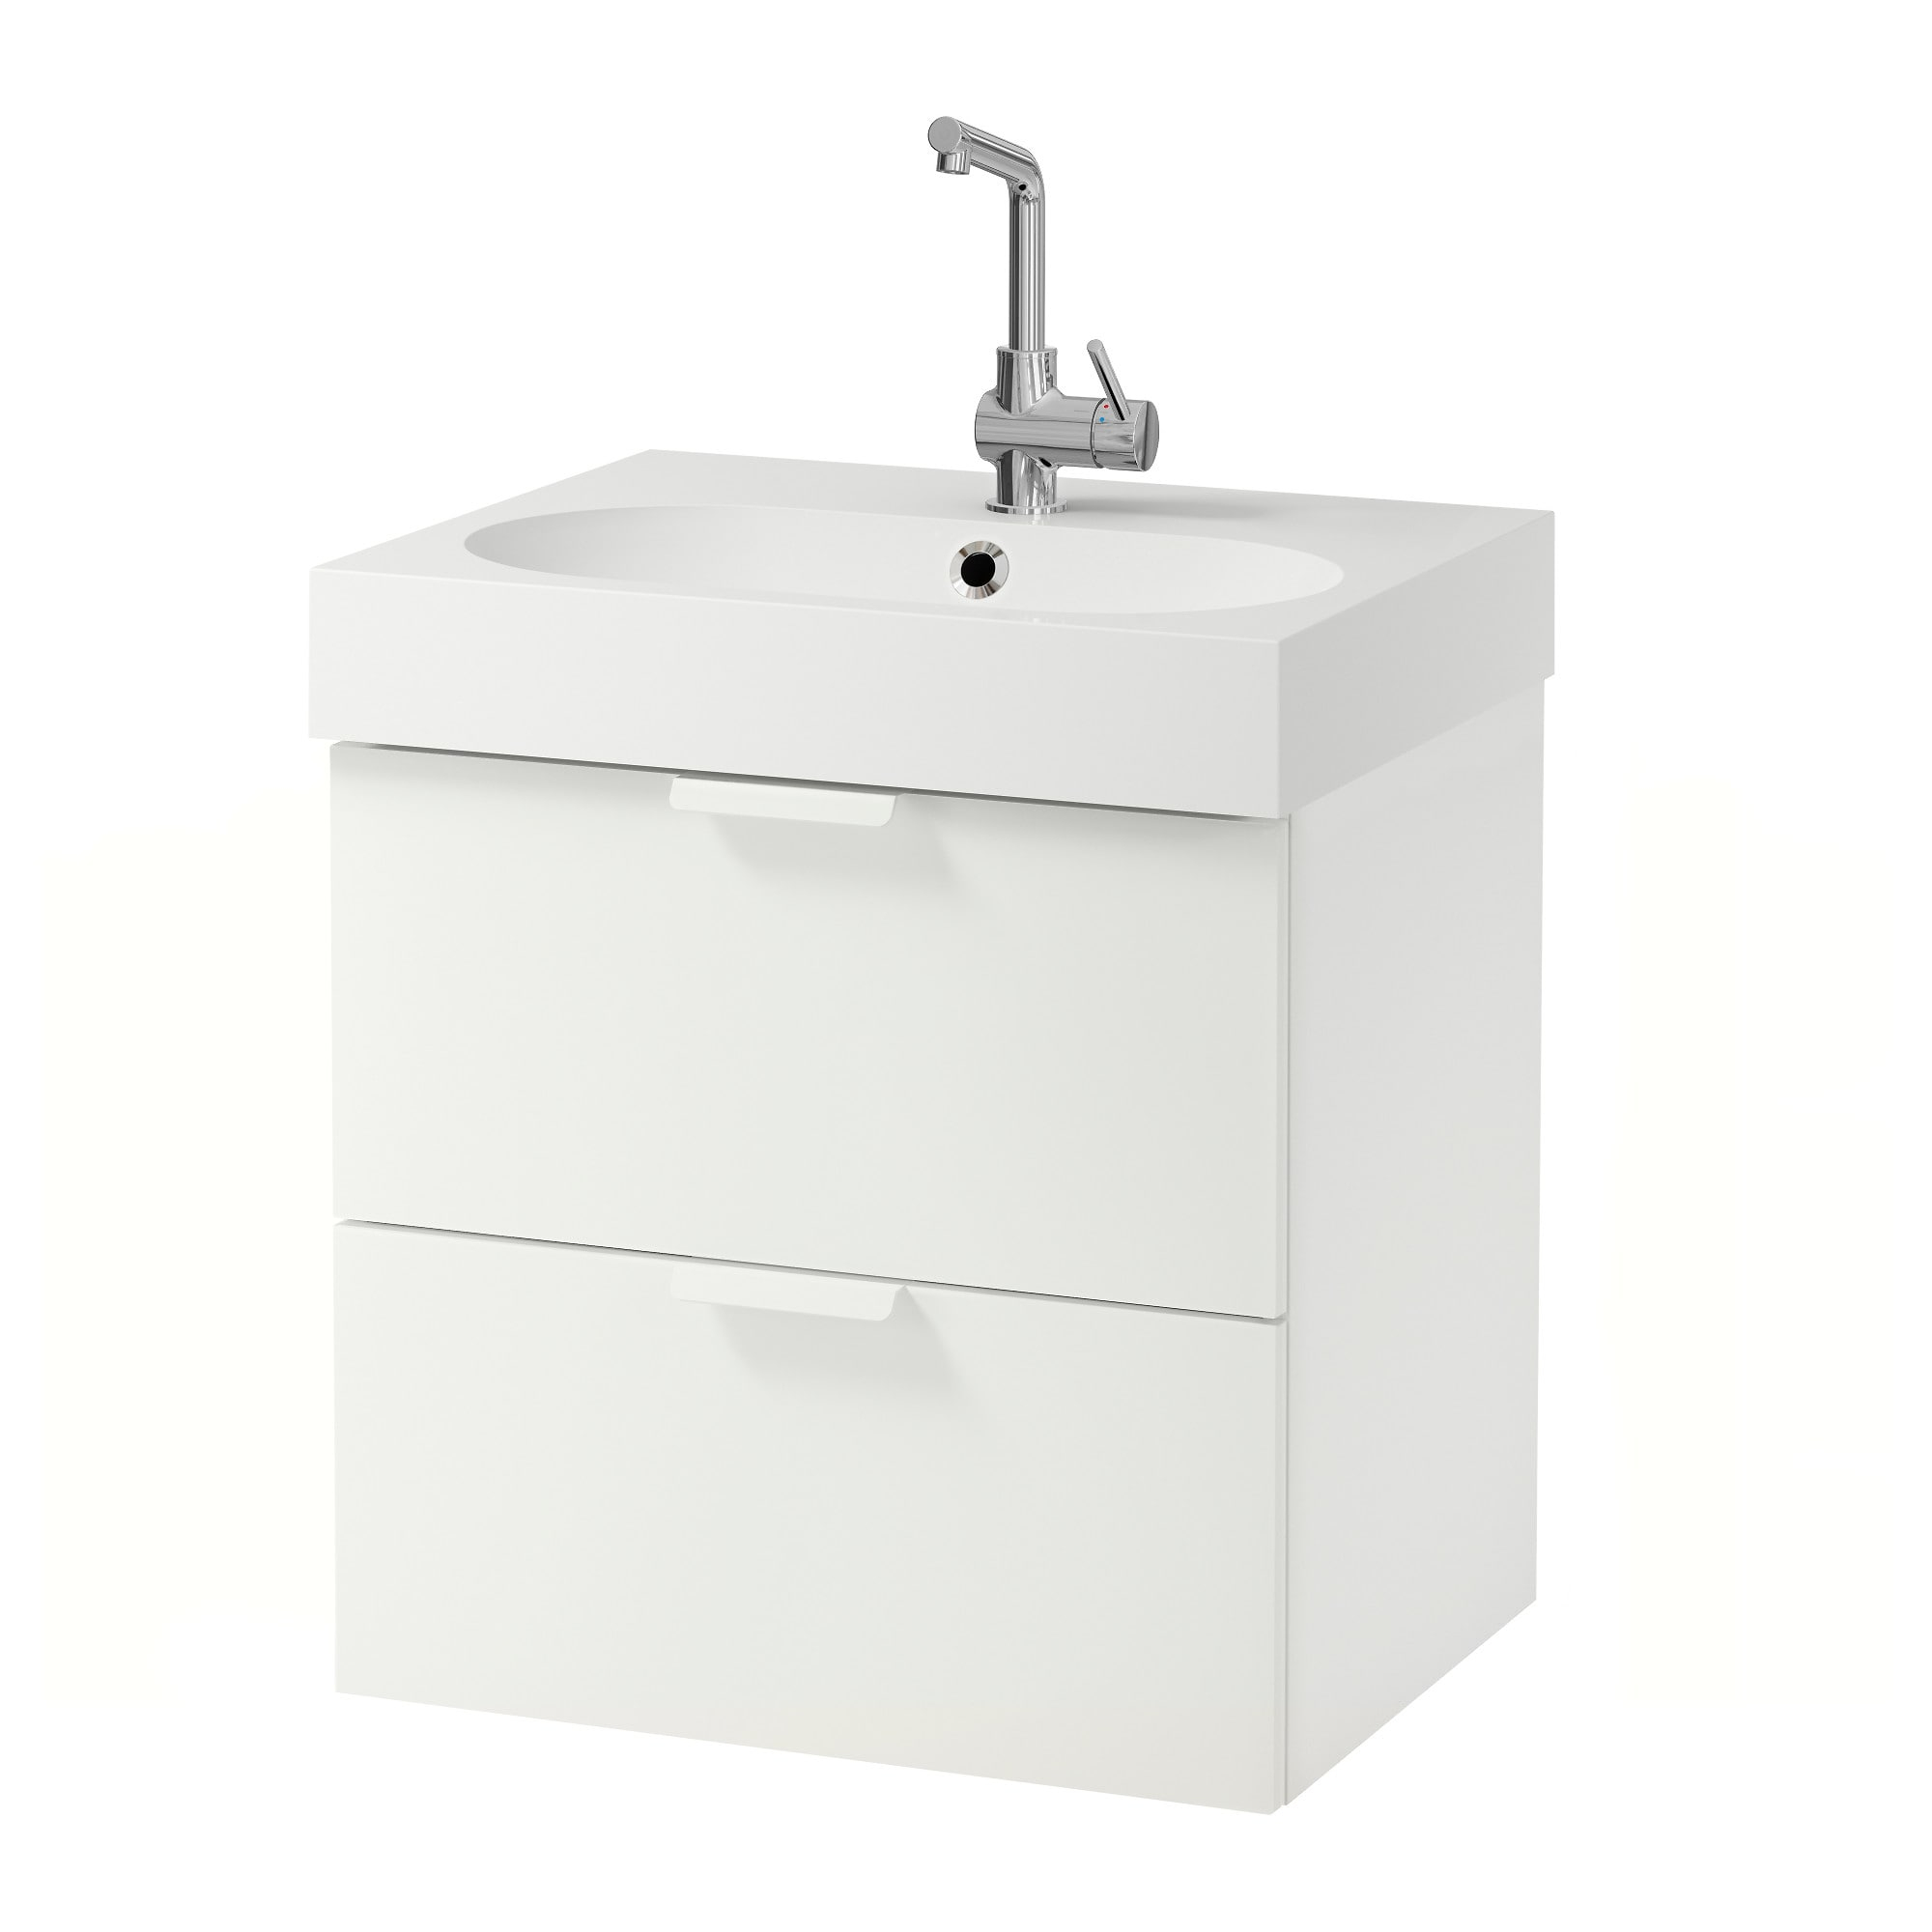 Lovely Vanity Units - Sink Cabinets & Wash Stands | Ikea pertaining to Unique Bathroom Sink With Cabinet